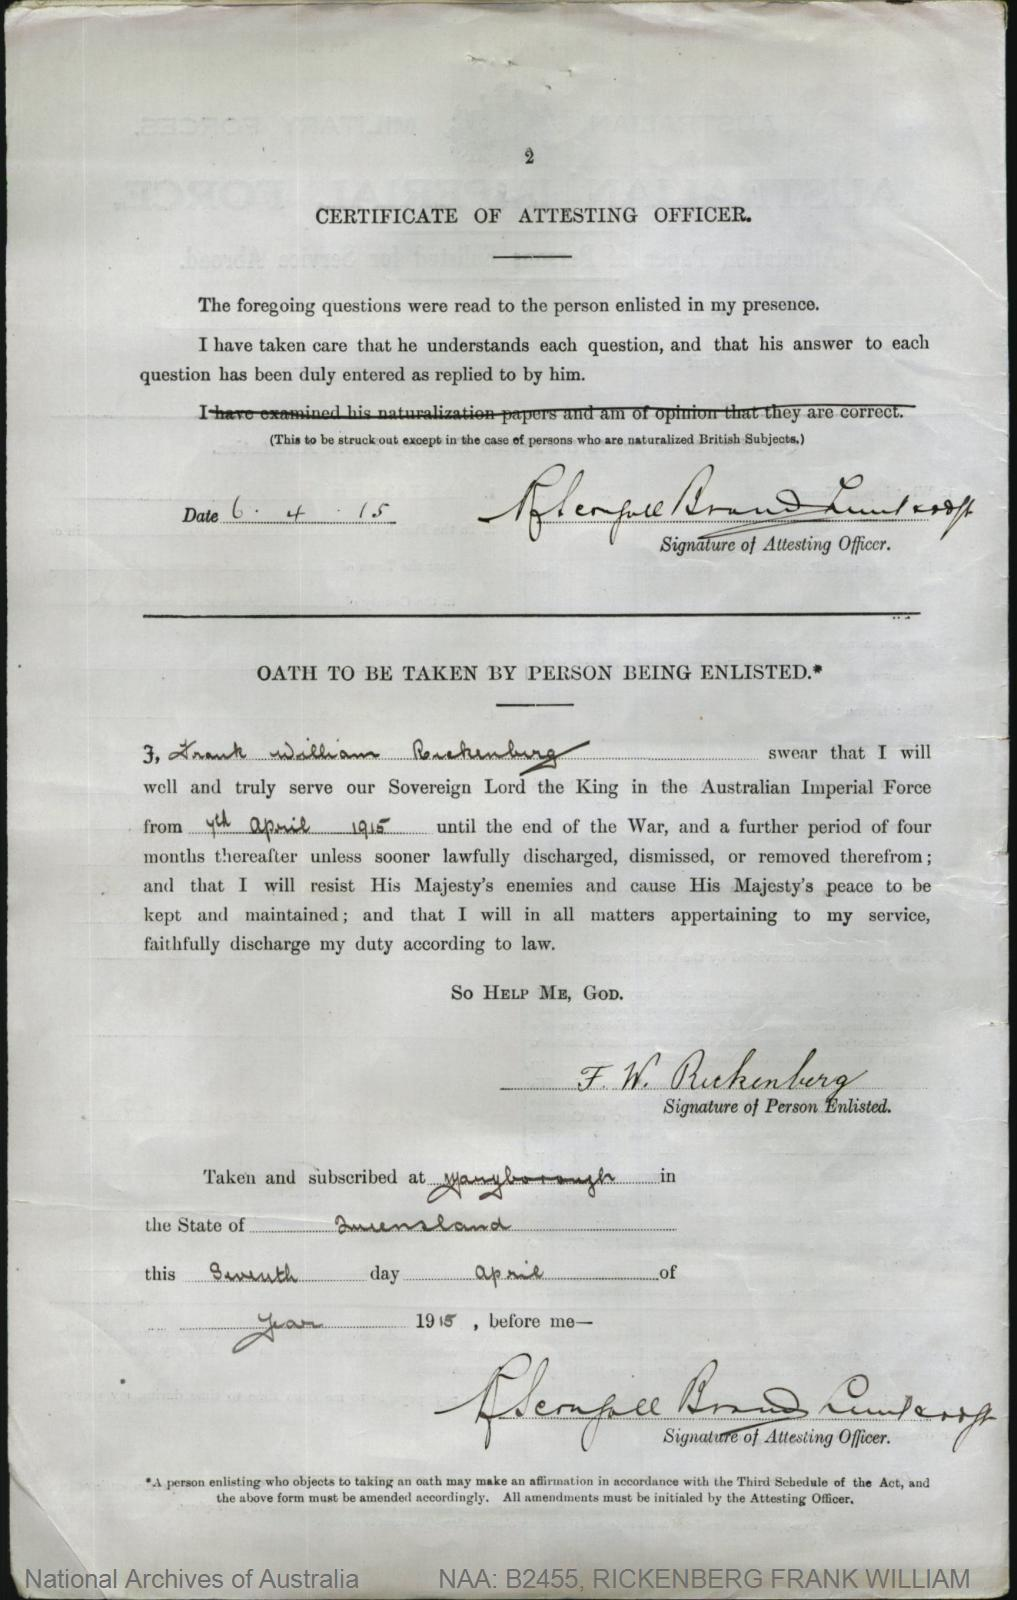 RICKENBERG Frank William : Service Number - 160 : Place of Birth - Maryborough QLD : Place of Enlistment - Maryborough QLD : Next of Kin - (Mother) RICKENBERG M